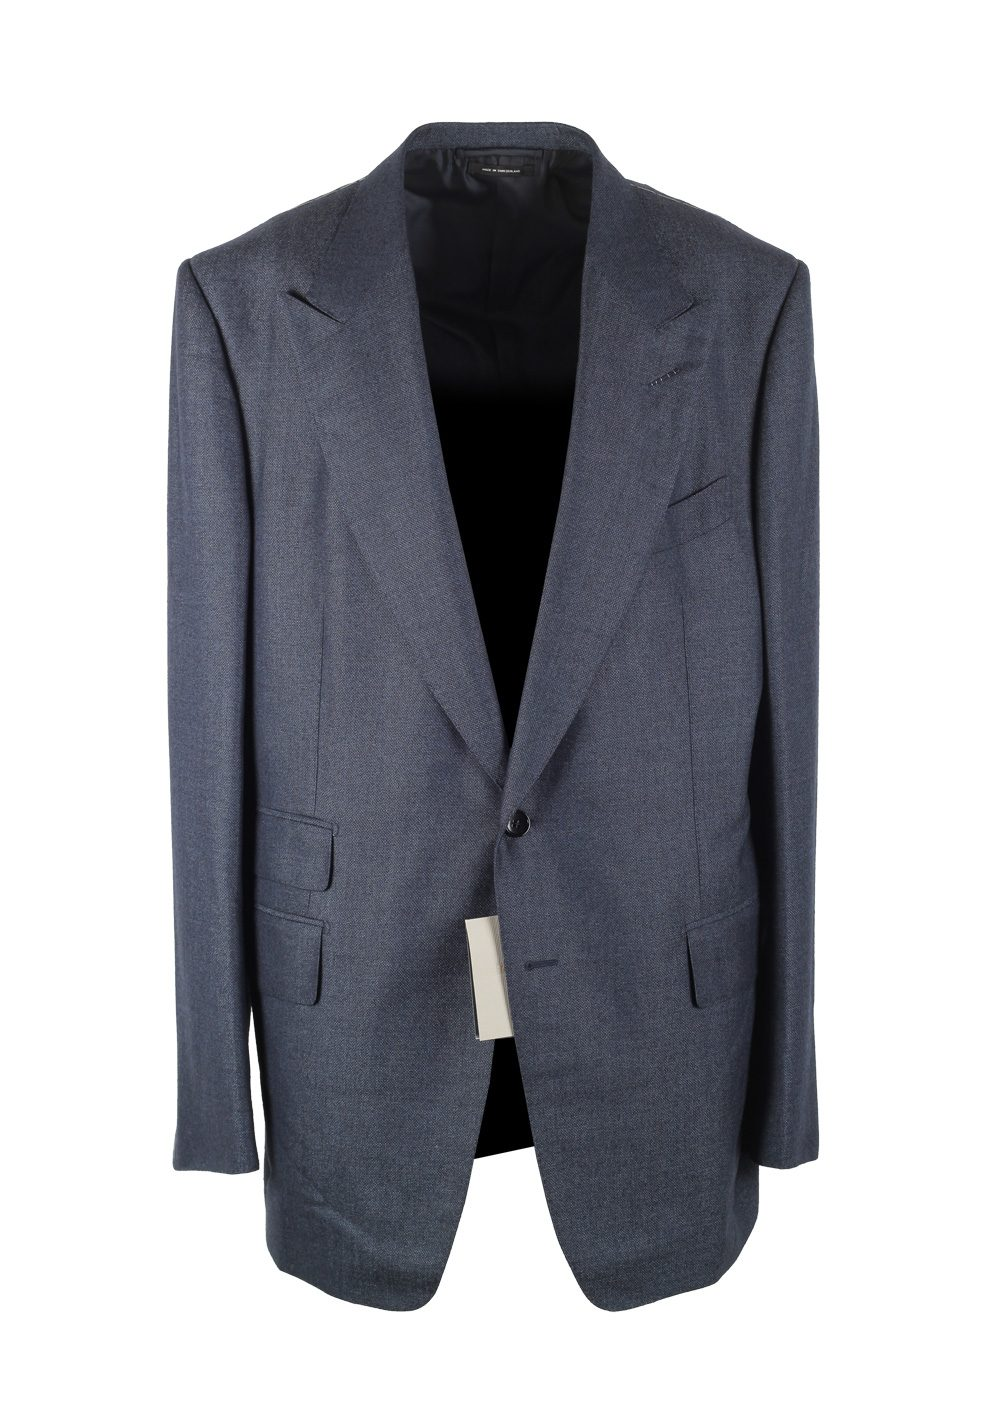 TOM FORD Shelton Blue Suit Size 58L / 48L U.S. In Wool Silk | Costume Limité